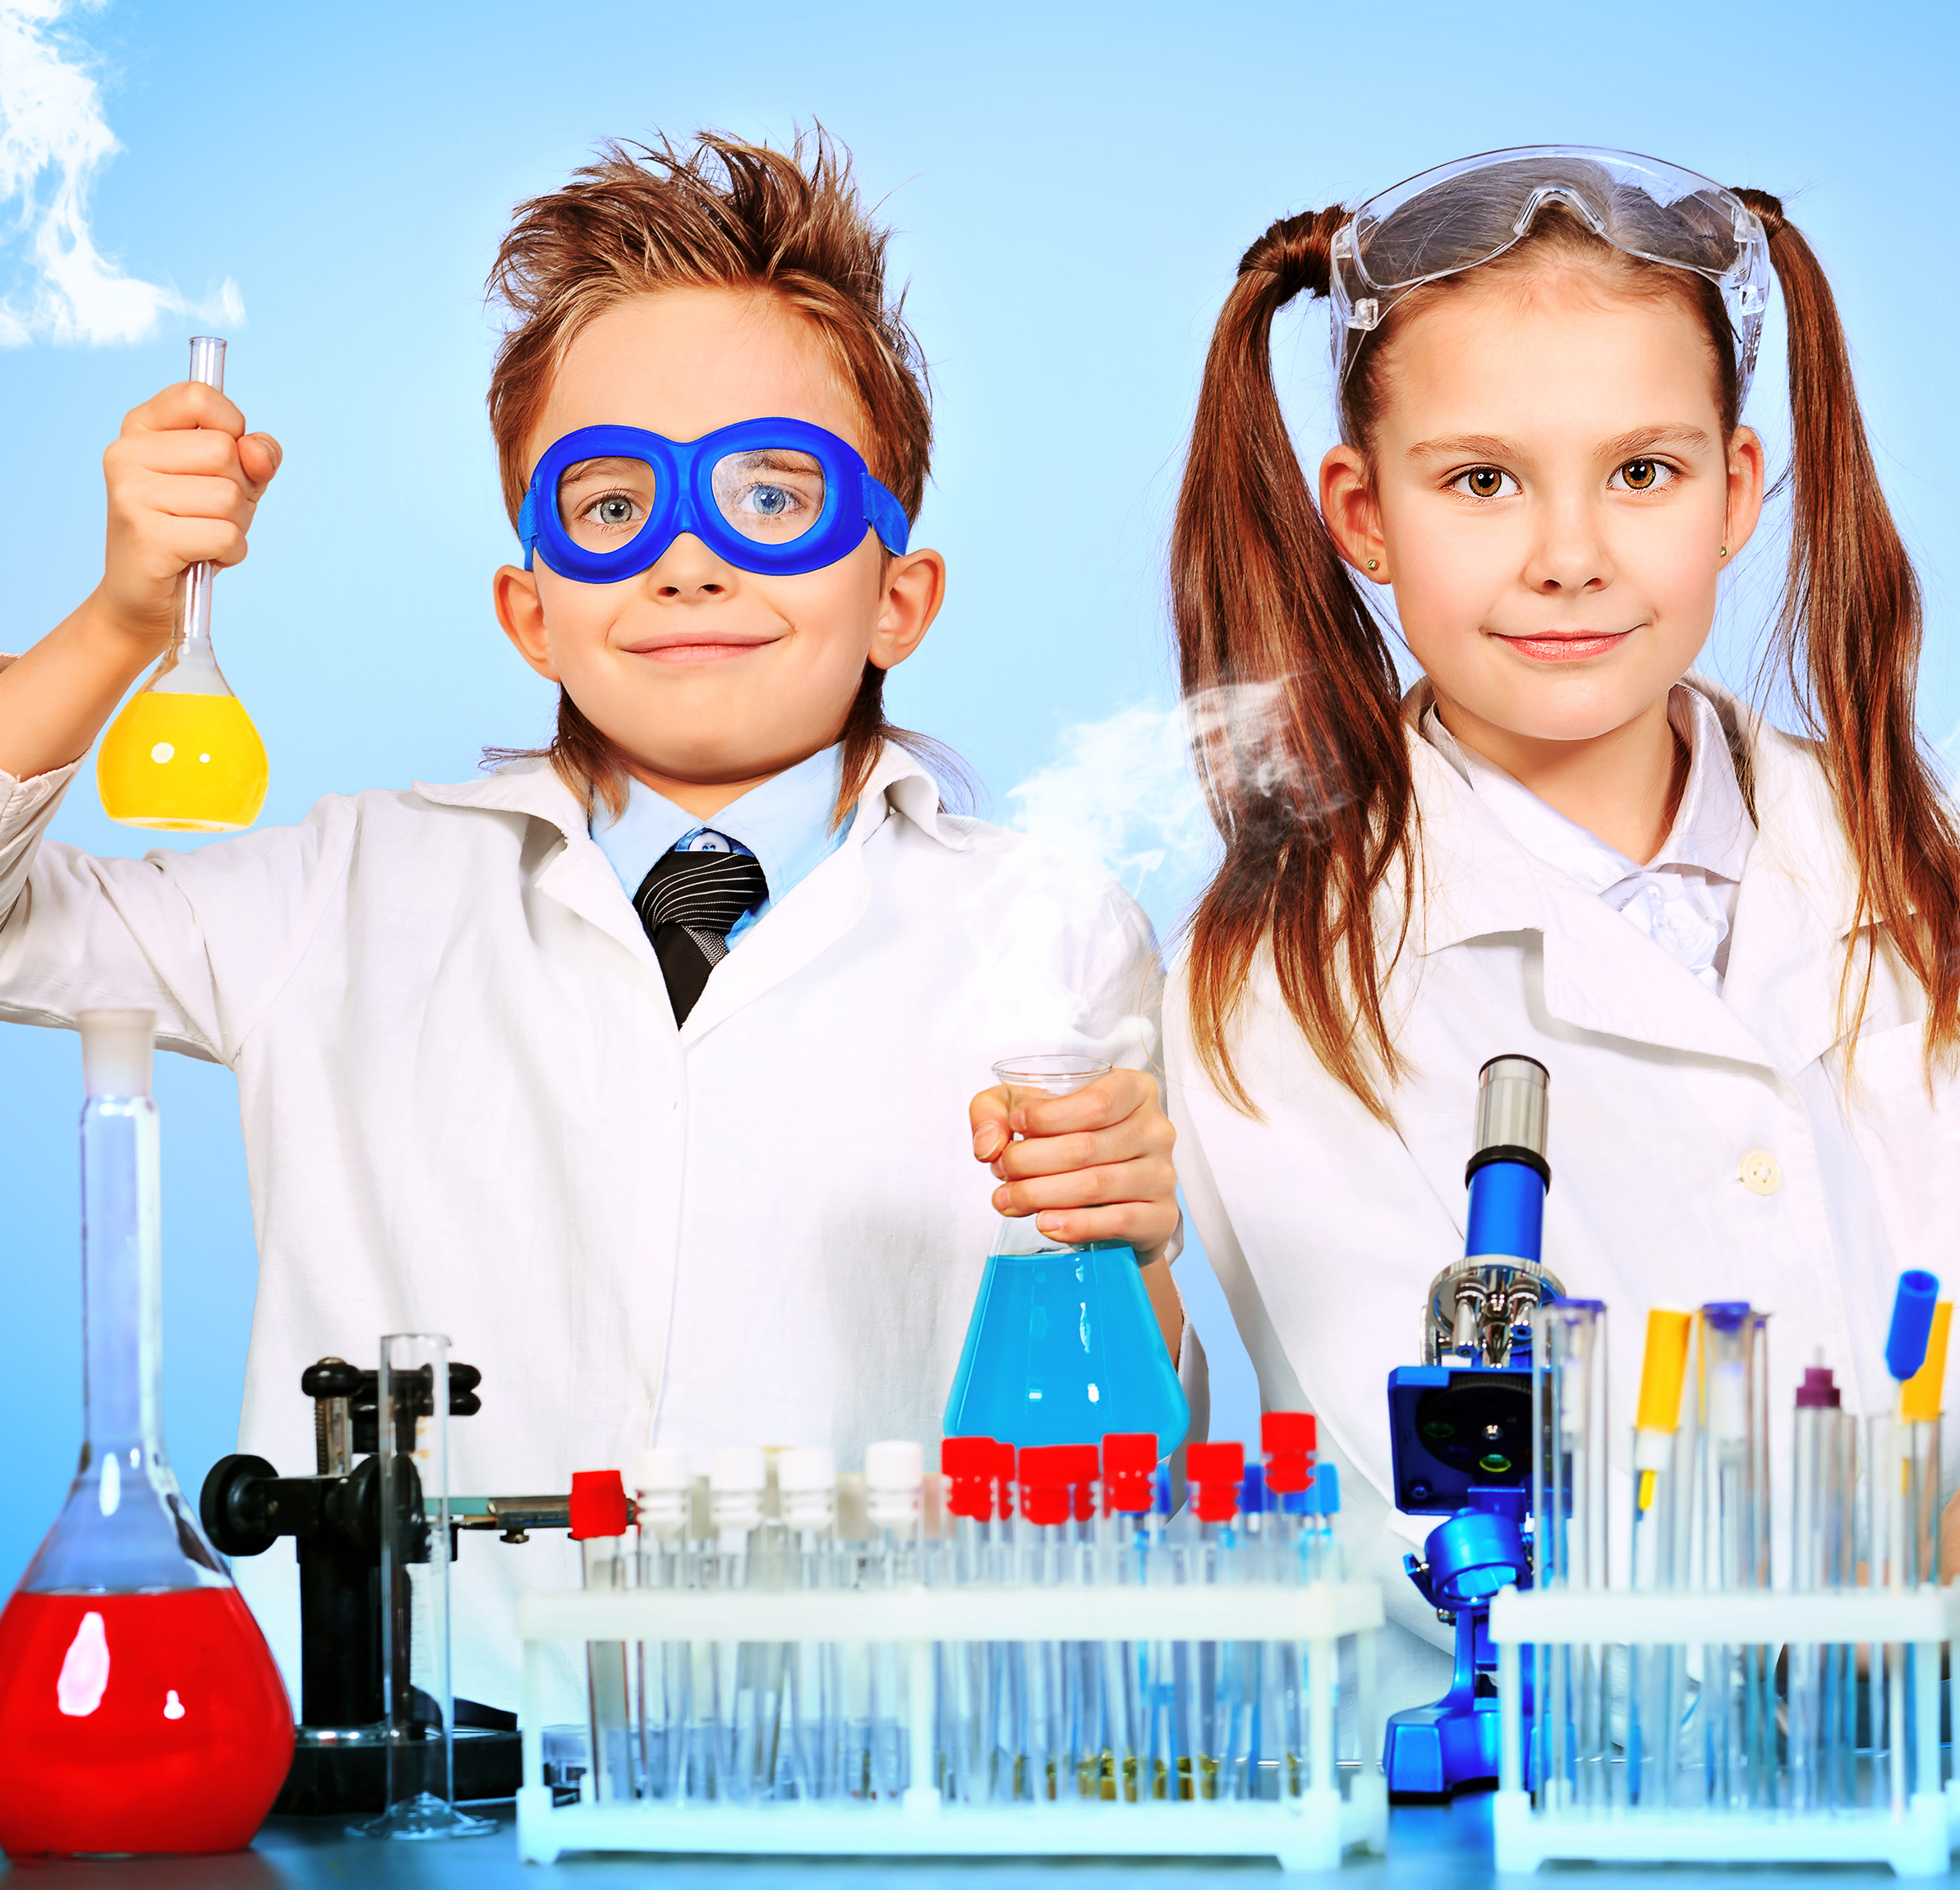 Little kid scientists in white lab coats.